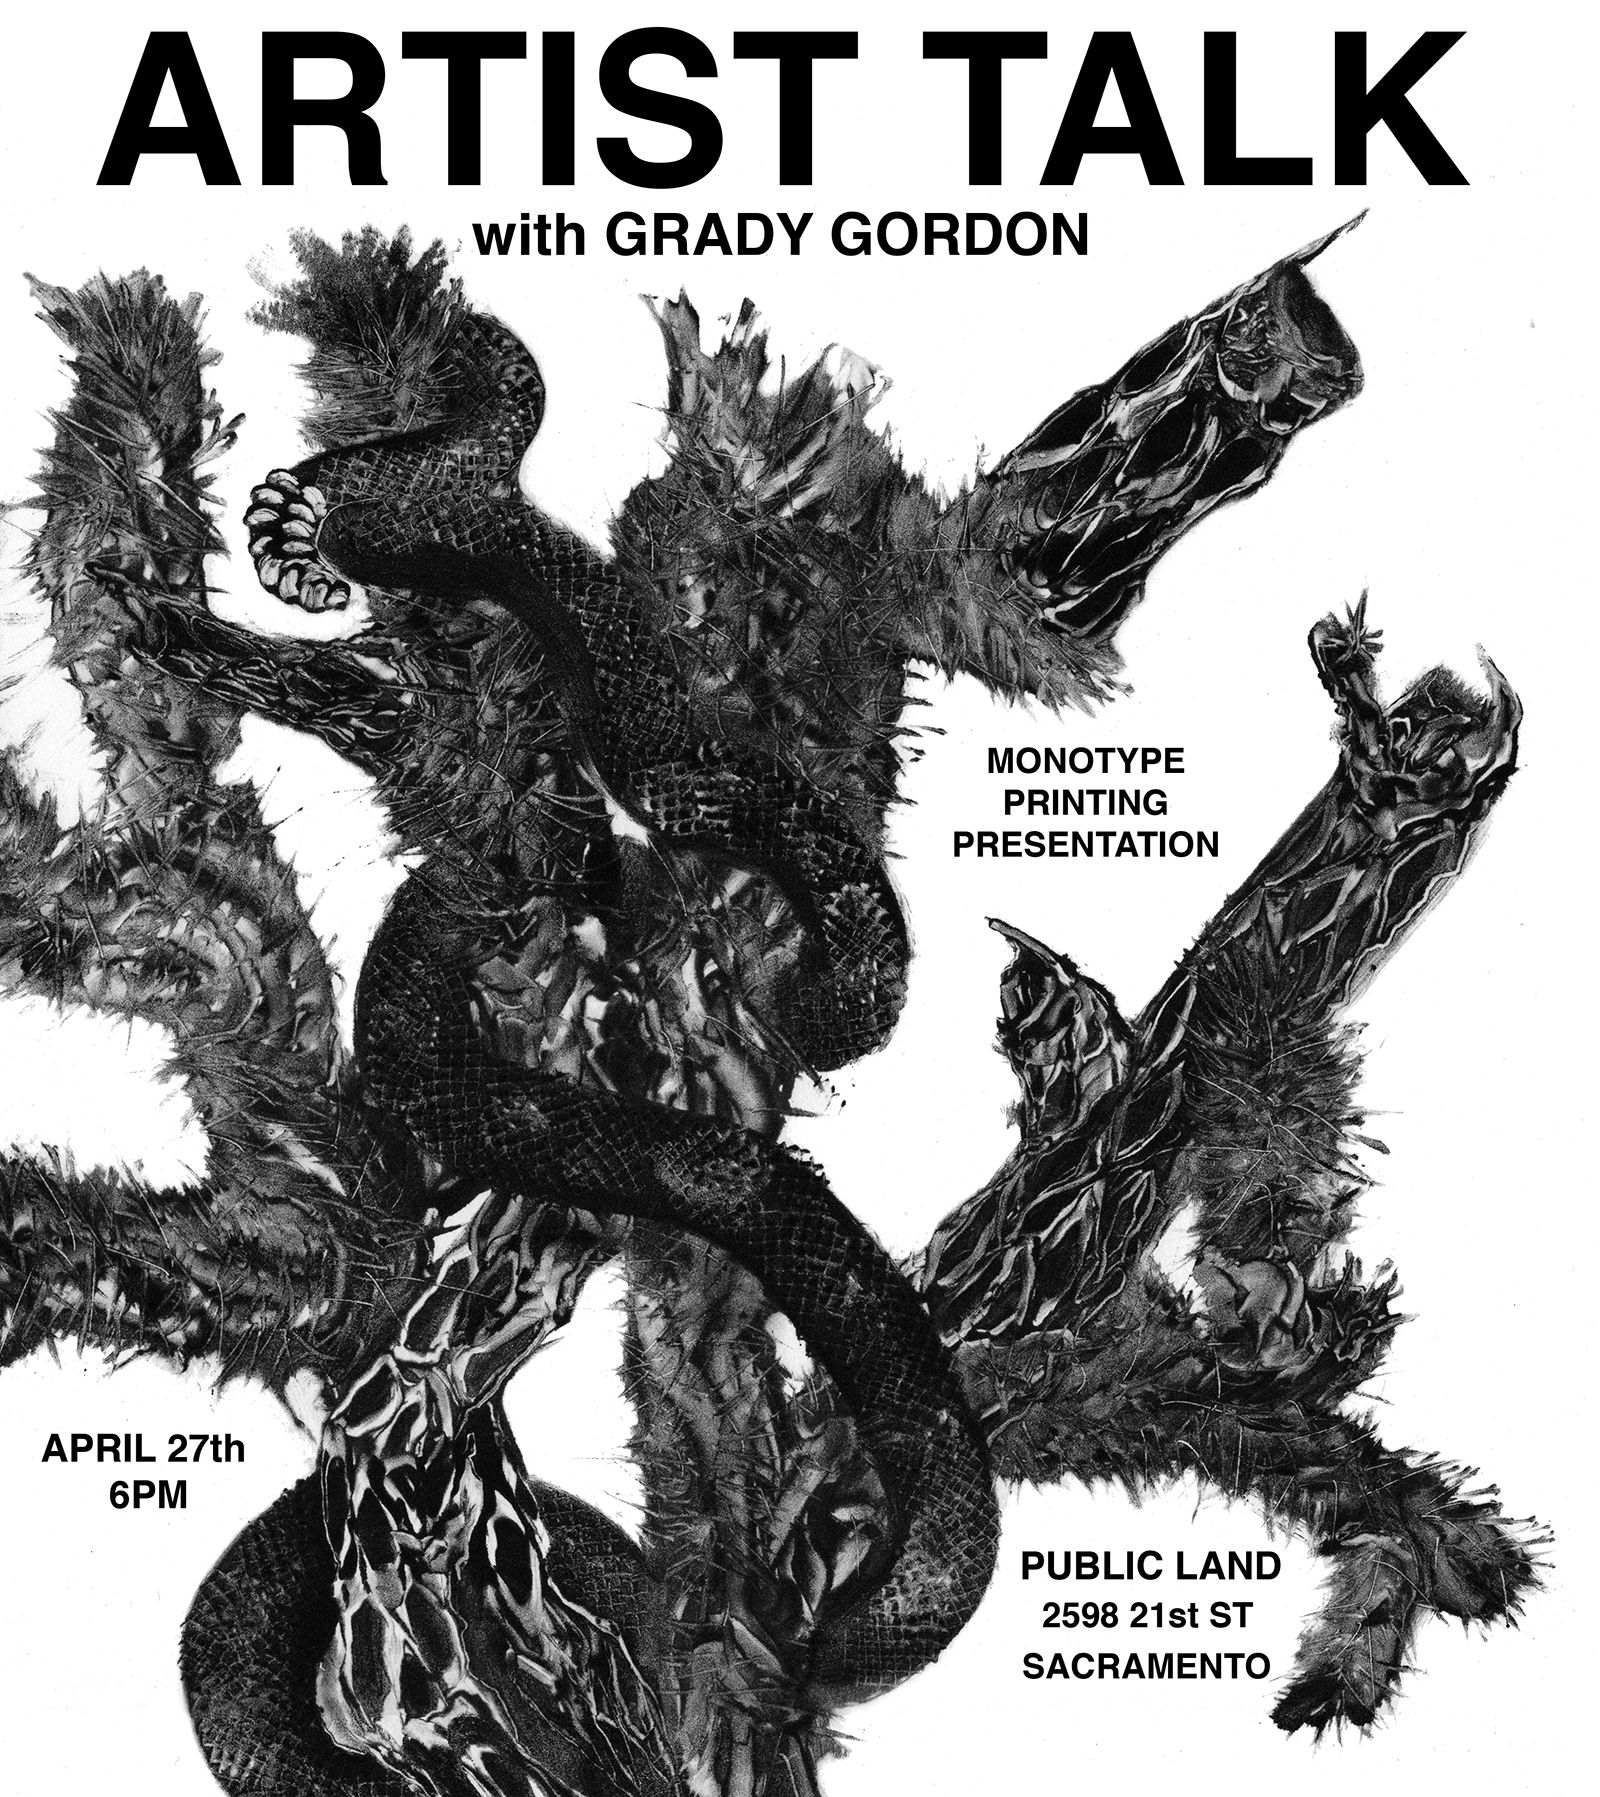 Grady Gordon artist talk at Sacramento gallery